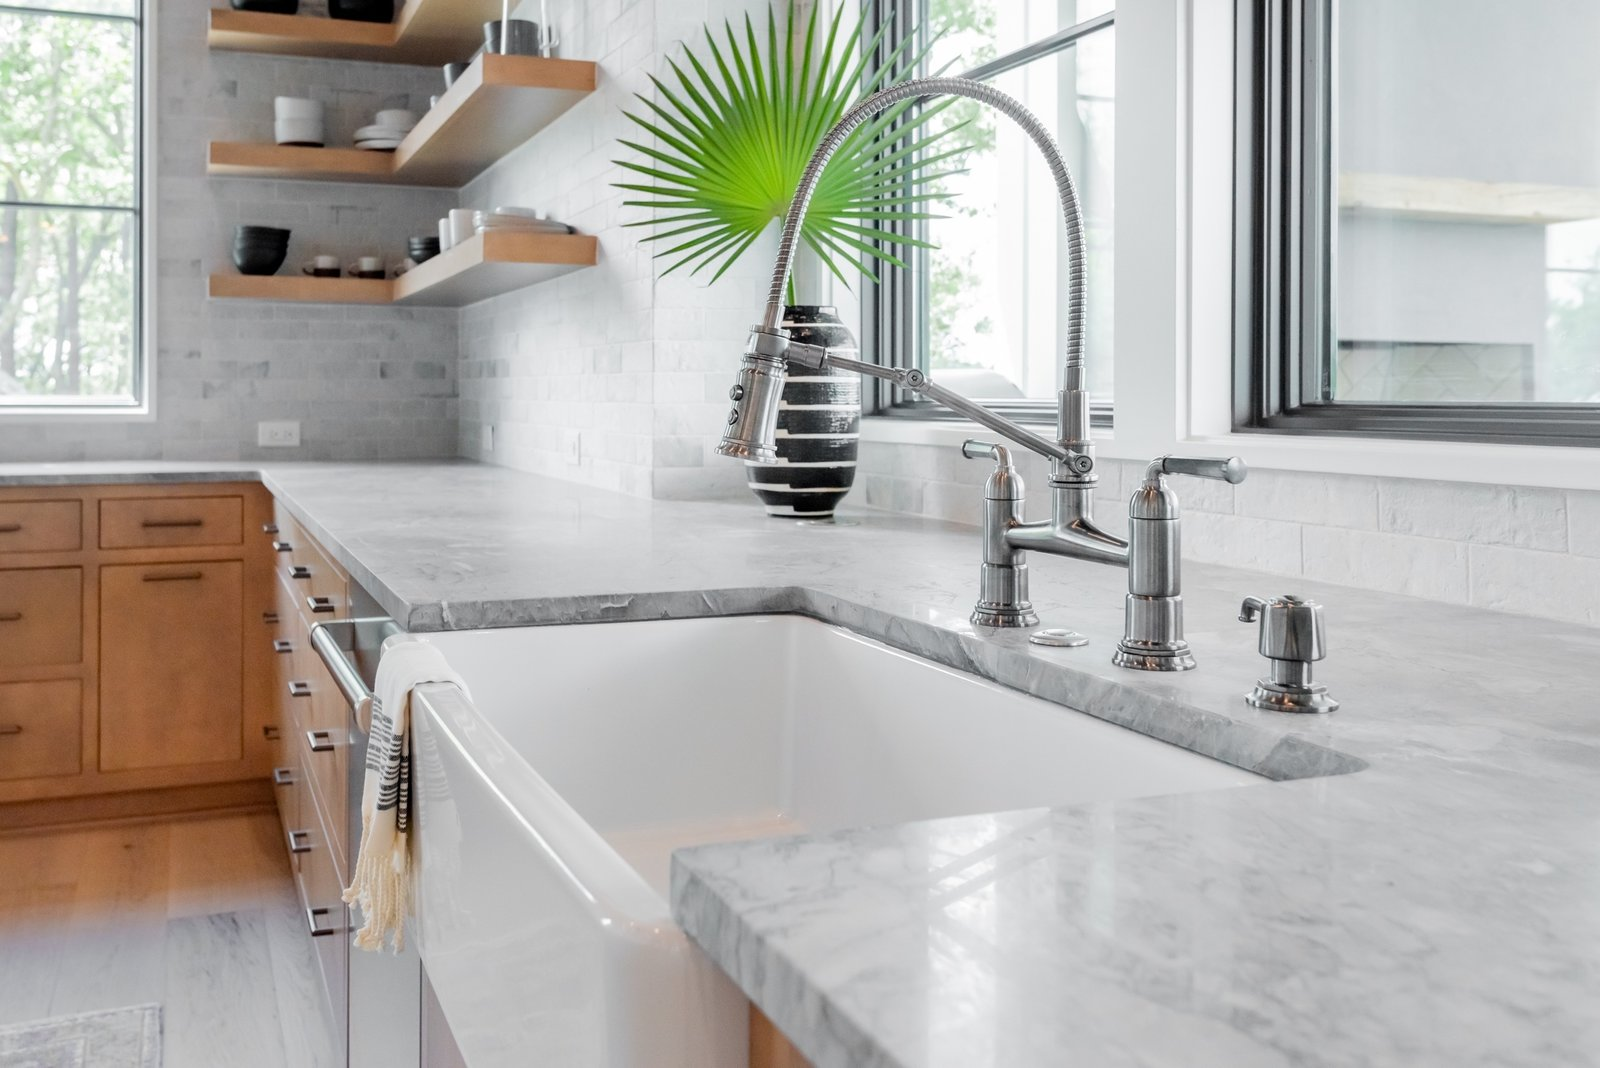 Kitchen, Medium Hardwood, Undermount, Wood, Stone Tile, and Marble A gray marble counter adds texture and visual interest to this kitchen designed by Jesse Vickers.   Kitchen Wood Stone Tile Medium Hardwood Photos from How Much Should You Spend on Kitchen Countertops?